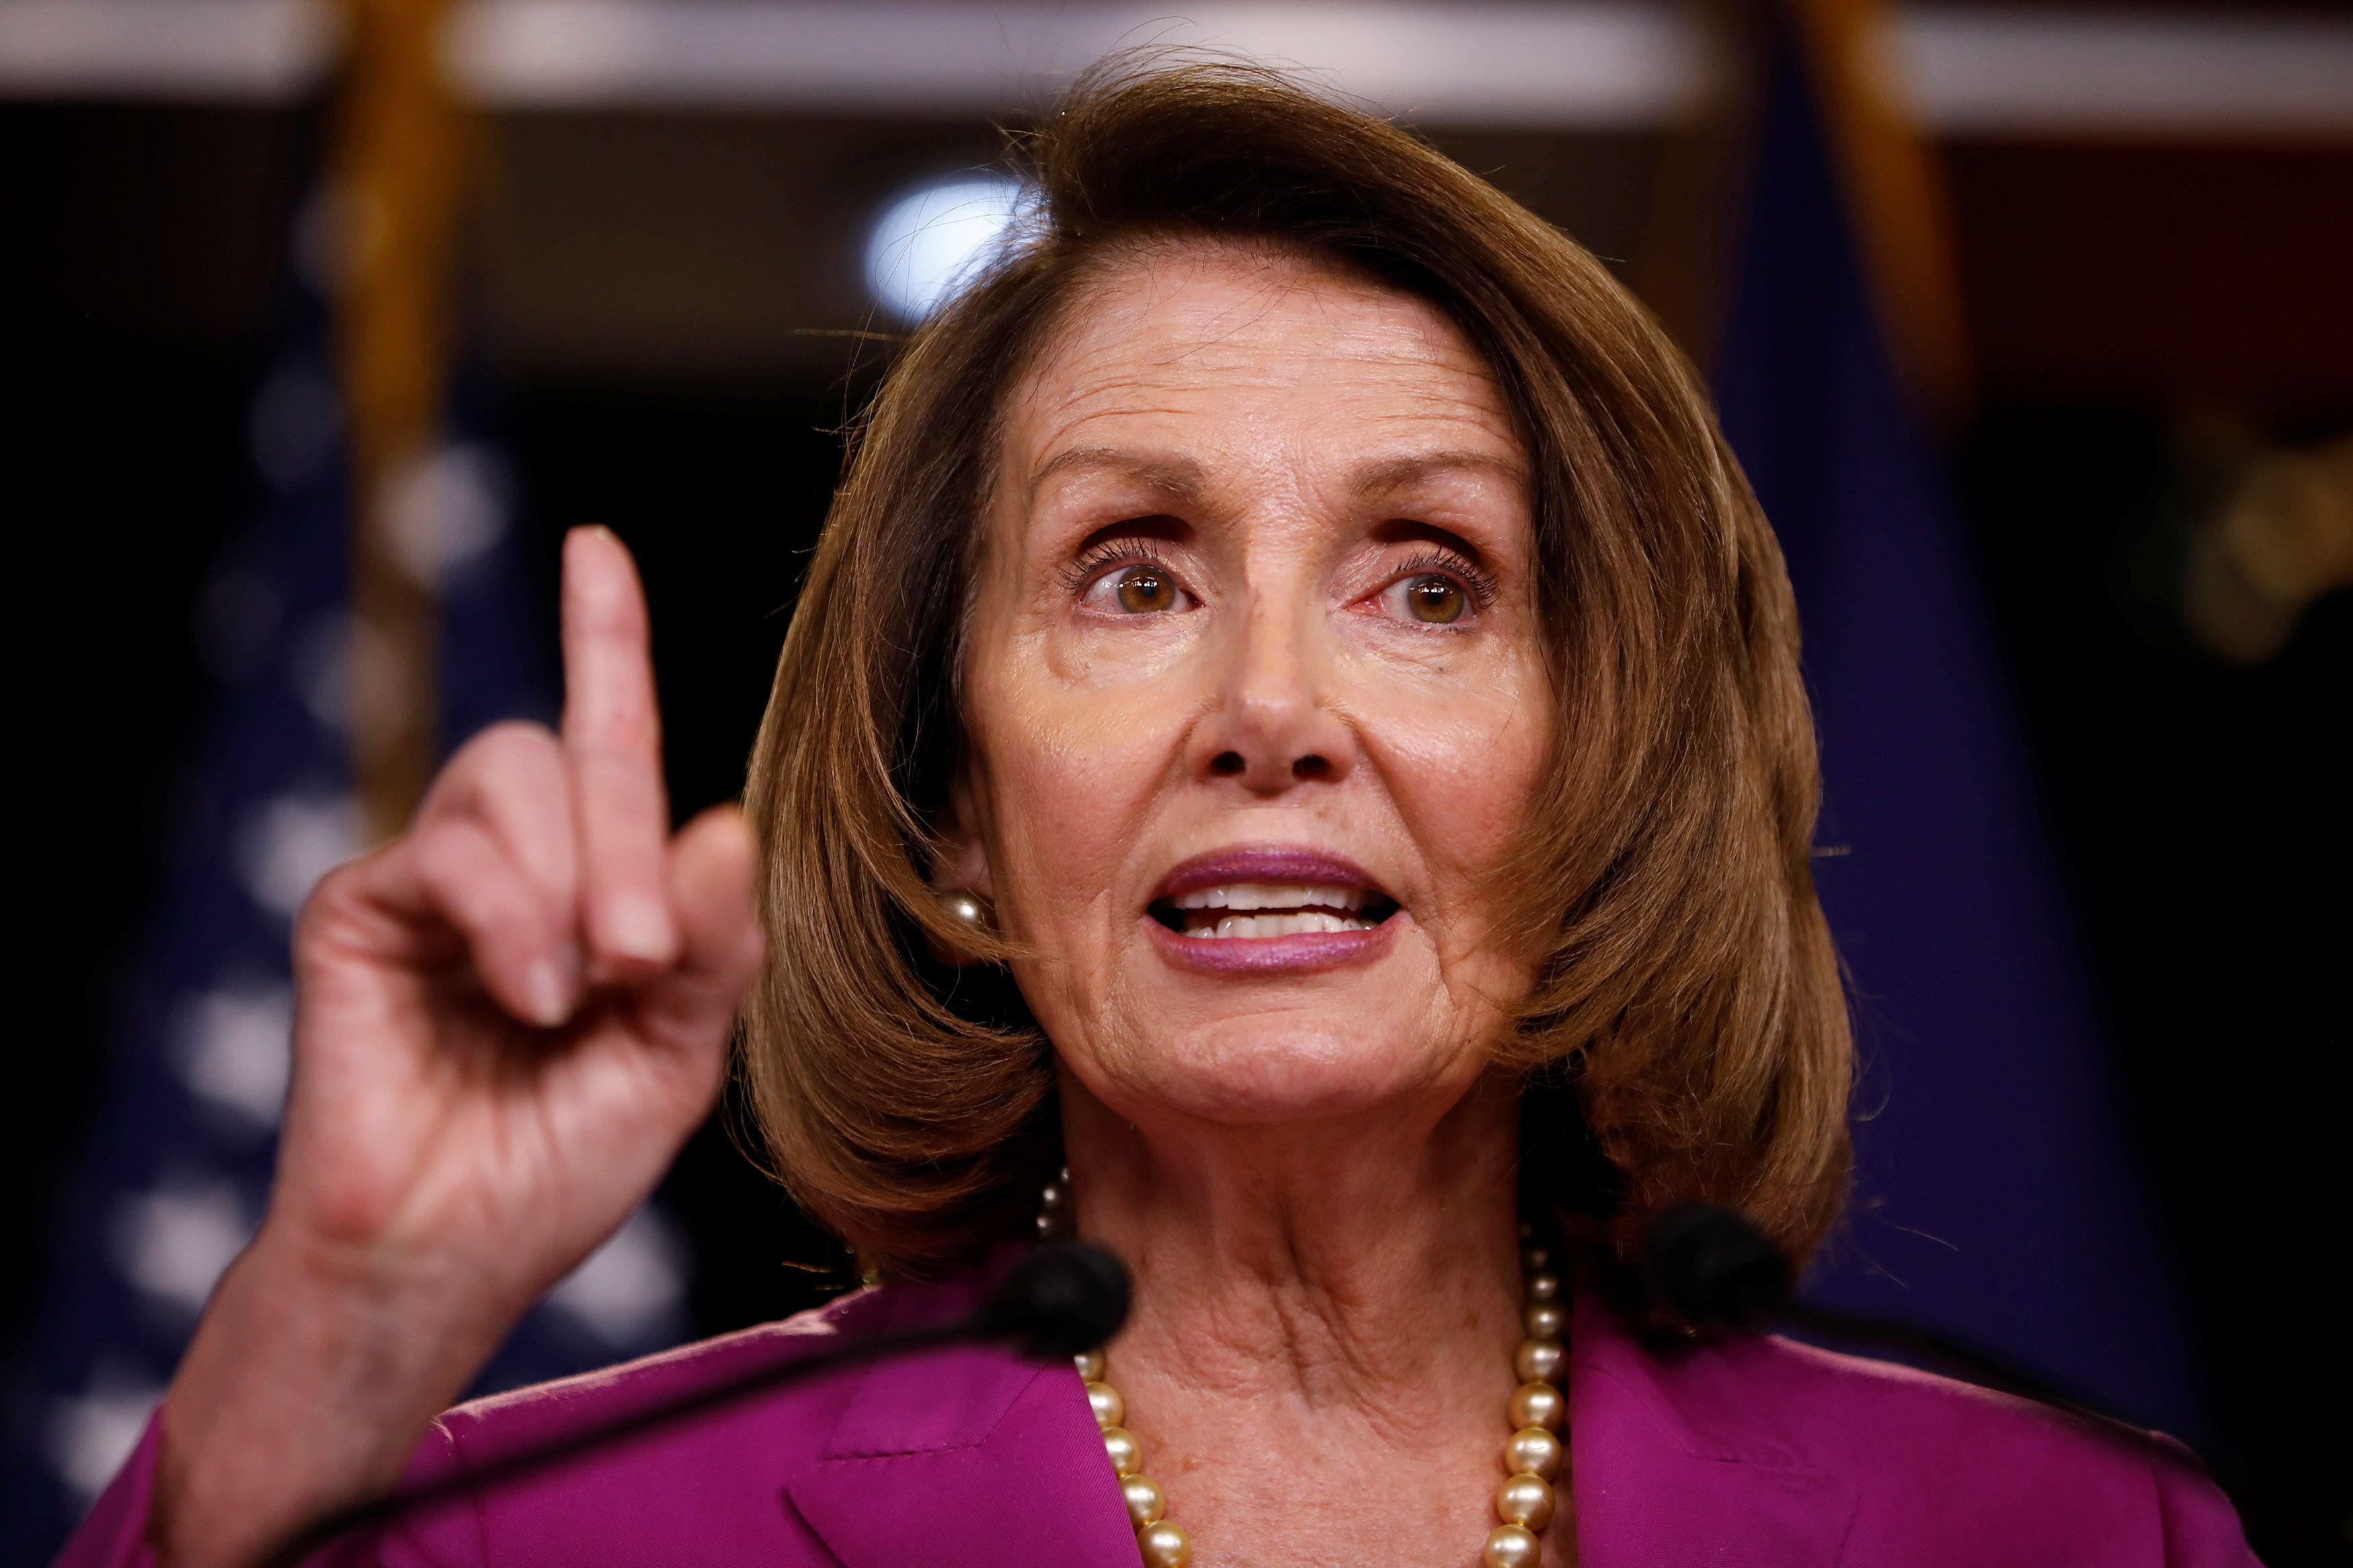 House Minority Leader Nancy Pelosi speaks with reporters during her weekly news conference on Capitol Hill in Washington, U.S., June 21, 2018.  REUTERS/Aaron P. Bernstein